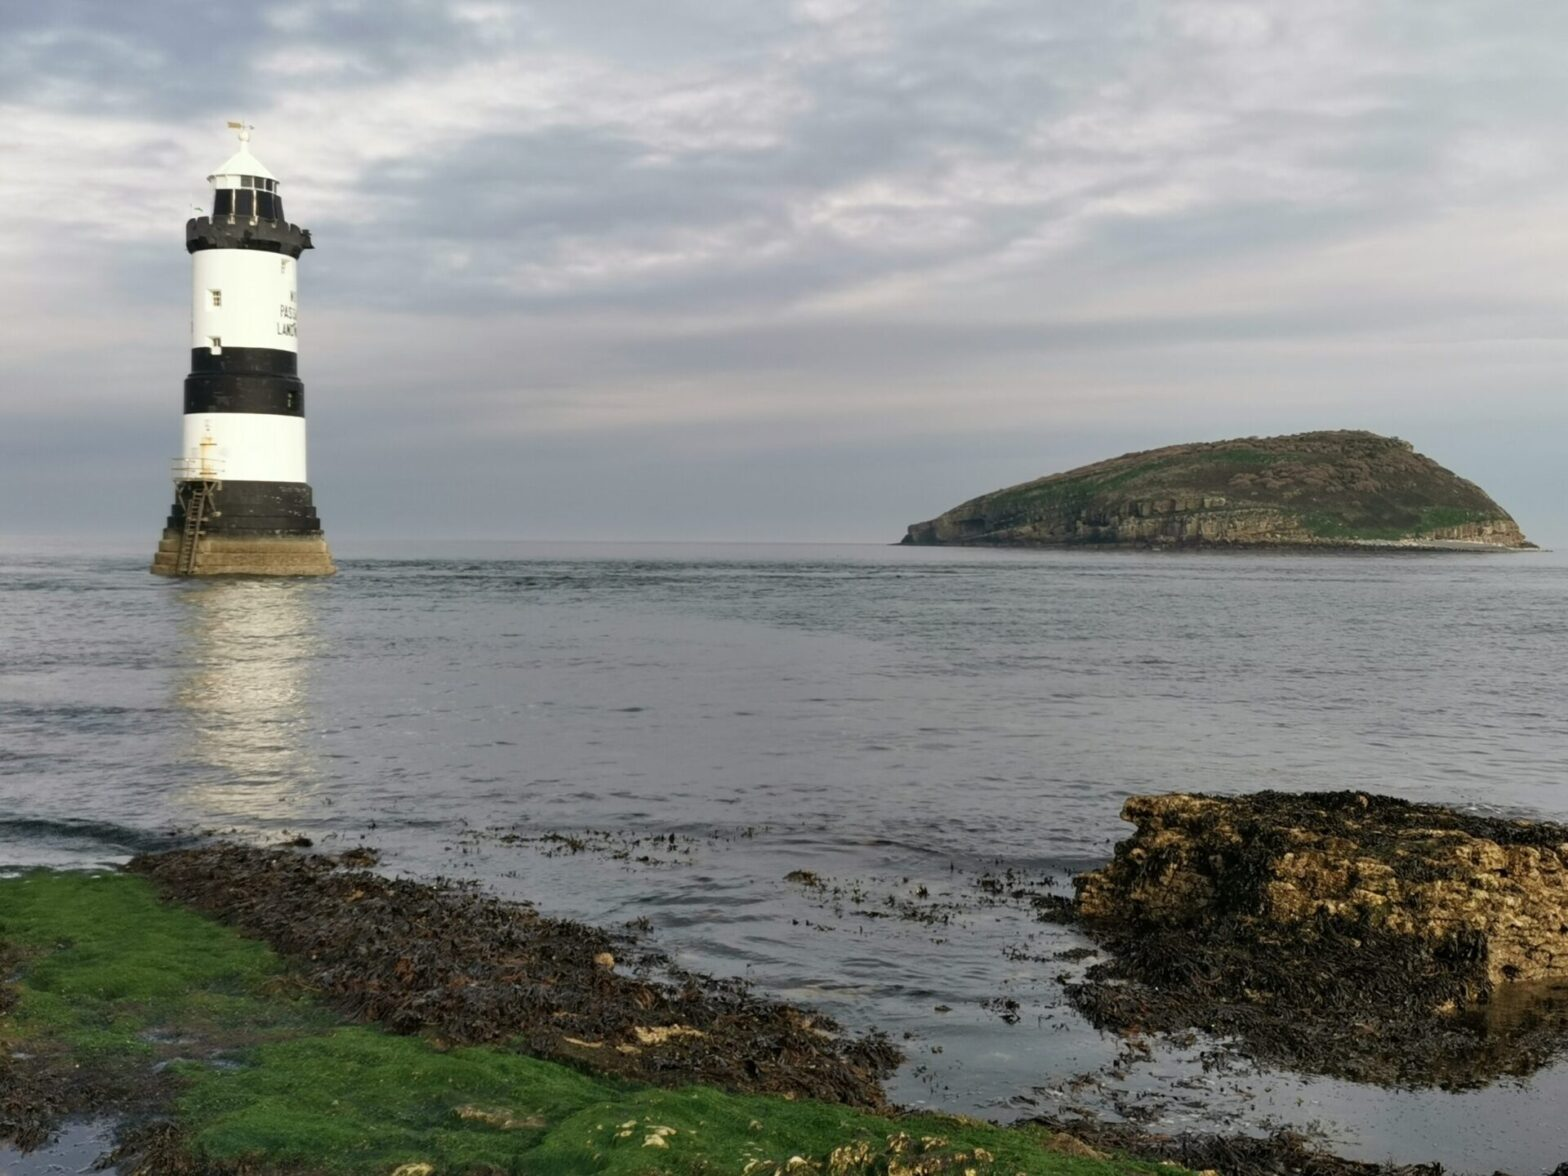 Puffin Island or Ynys Seiriol, Anglesey, and lighthouse